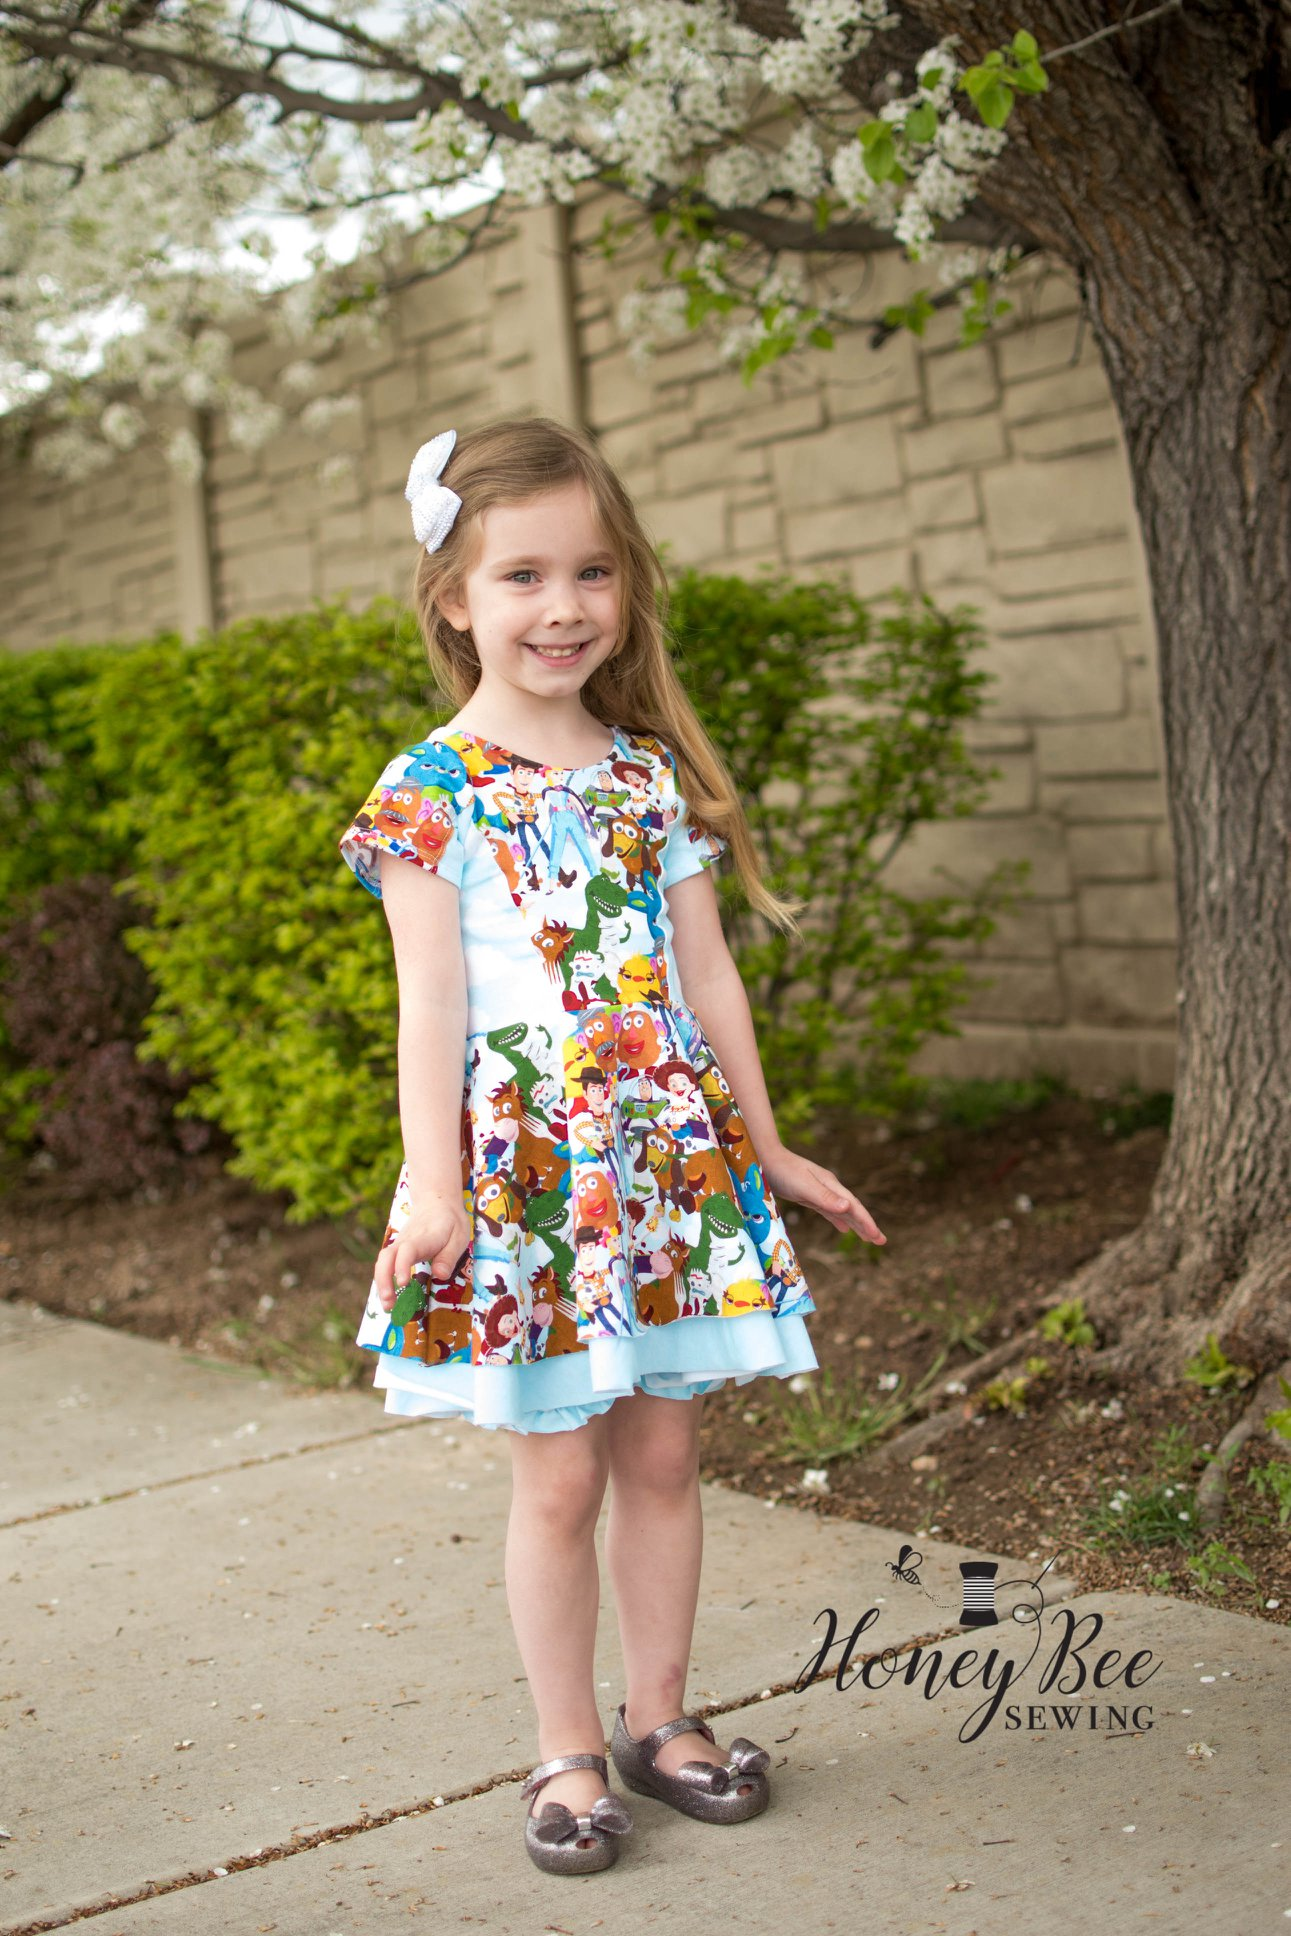 Abbex's Double Skirt Knit Dress Sizes 2T to 14 Kids PDF Pattern